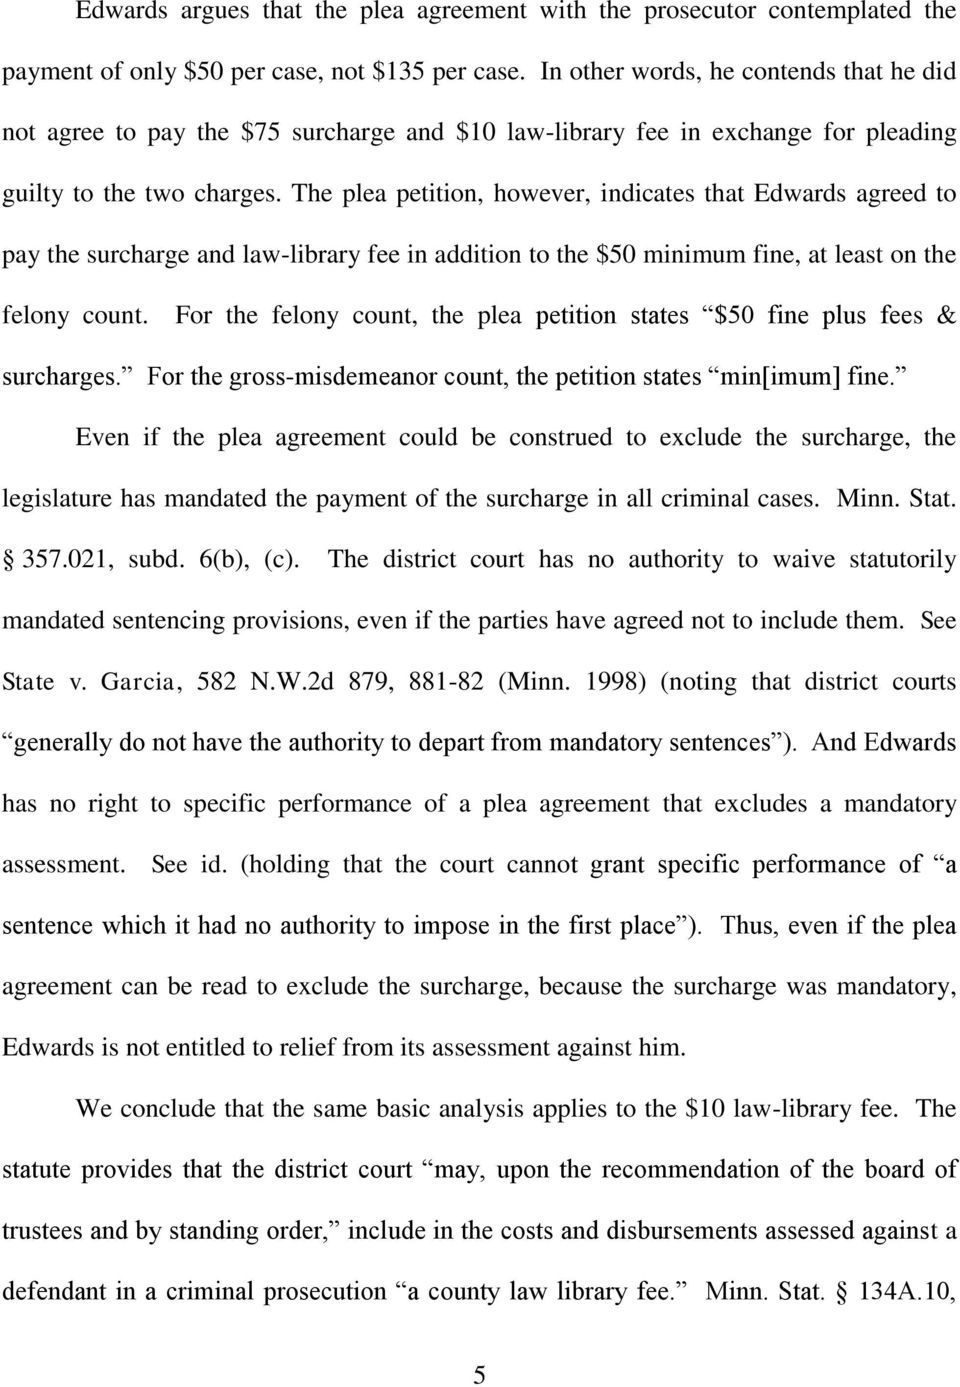 The plea petition, however, indicates that Edwards agreed to pay the surcharge and law-library fee in addition to the $50 minimum fine, at least on the felony count.